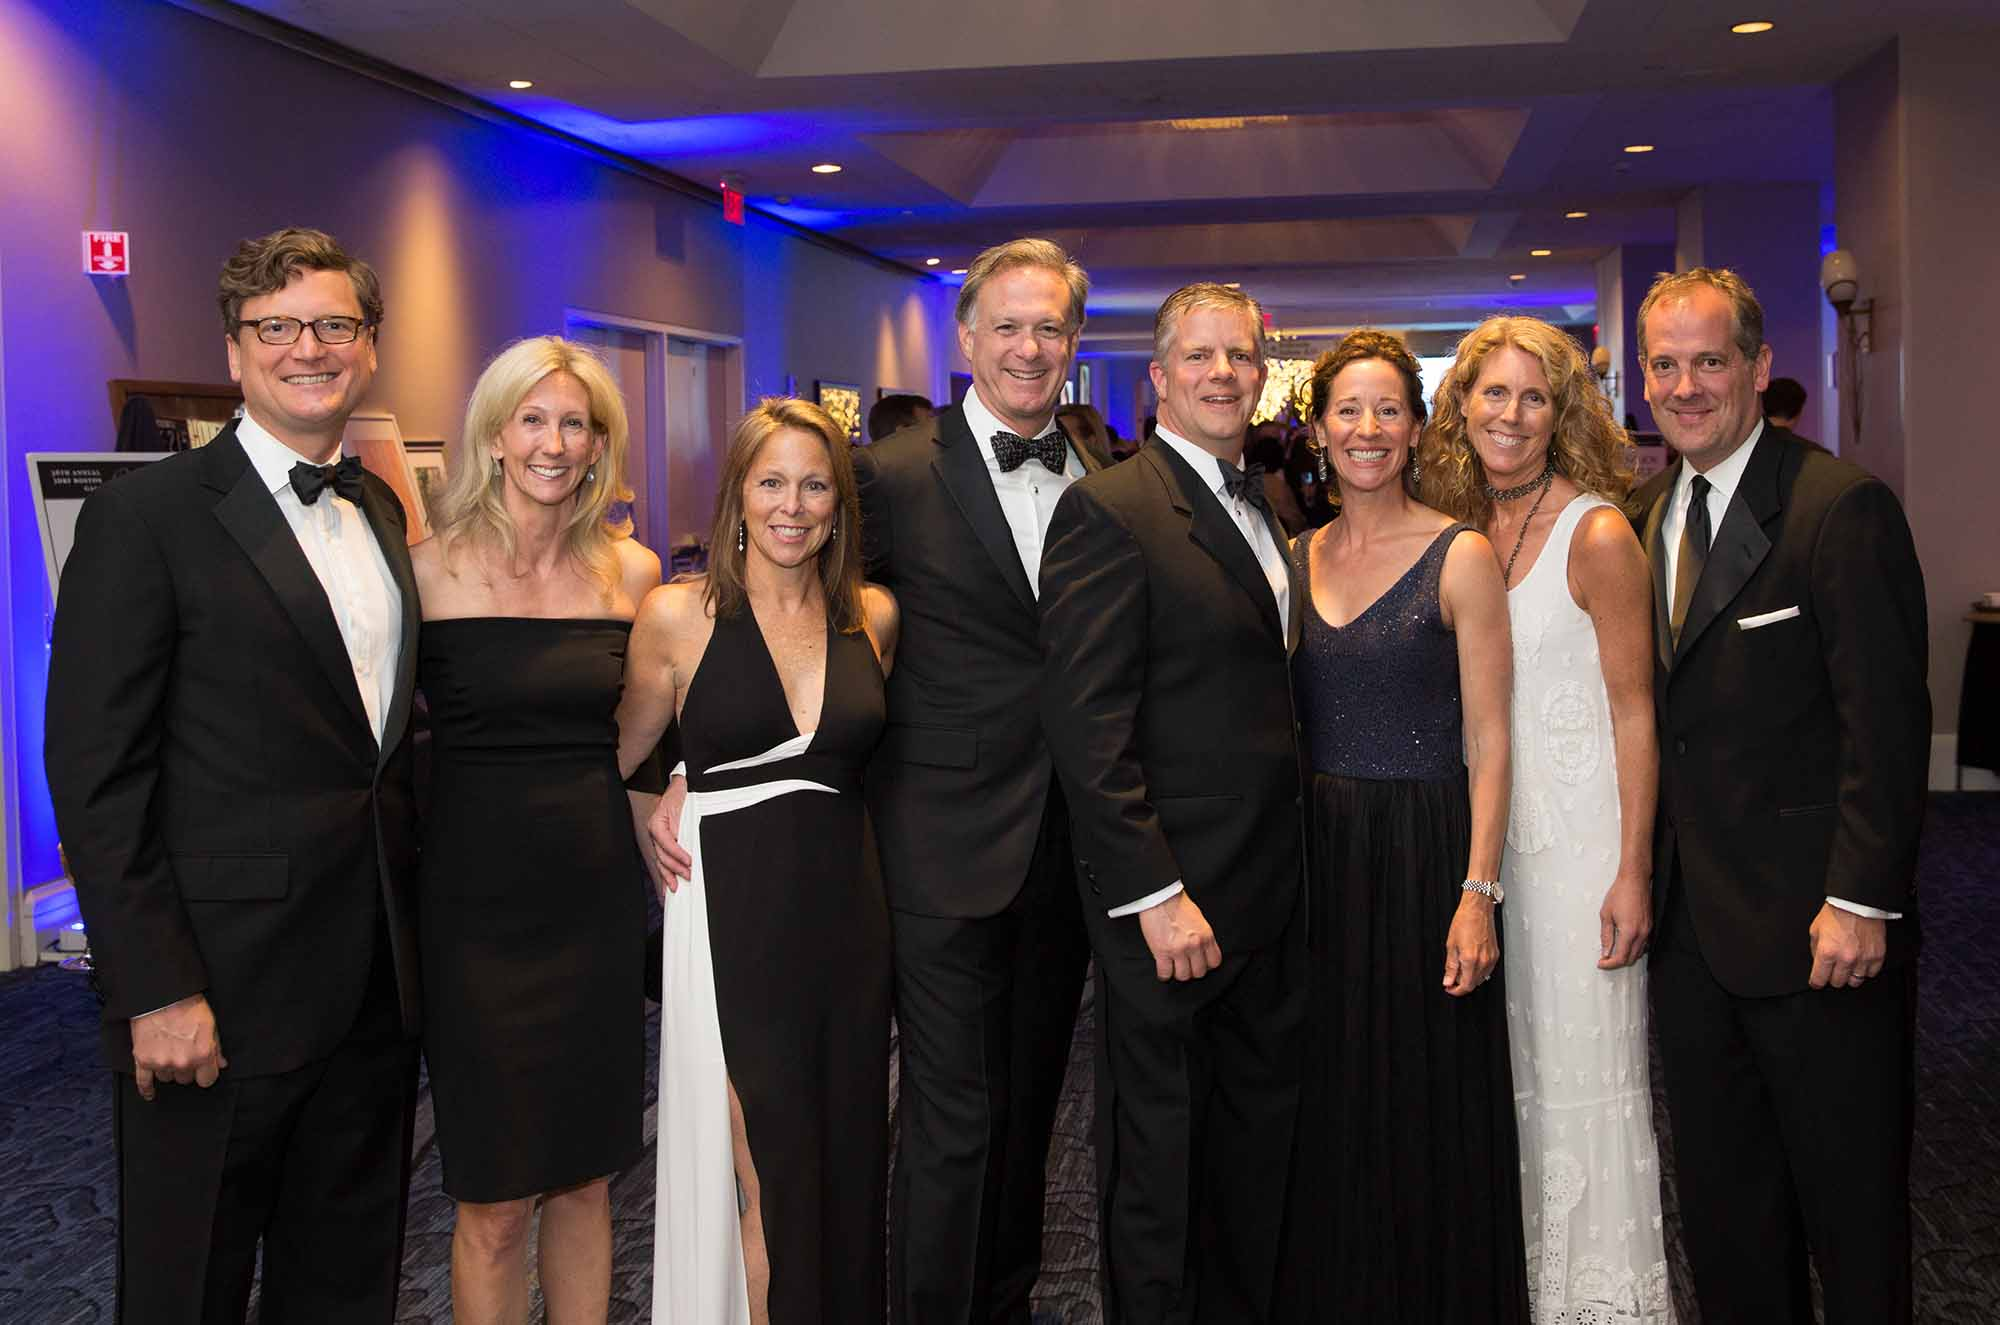 Bain Capital Community Partnership Serves as Signature Sponsor for 36th Annual JDRF One Night Gala